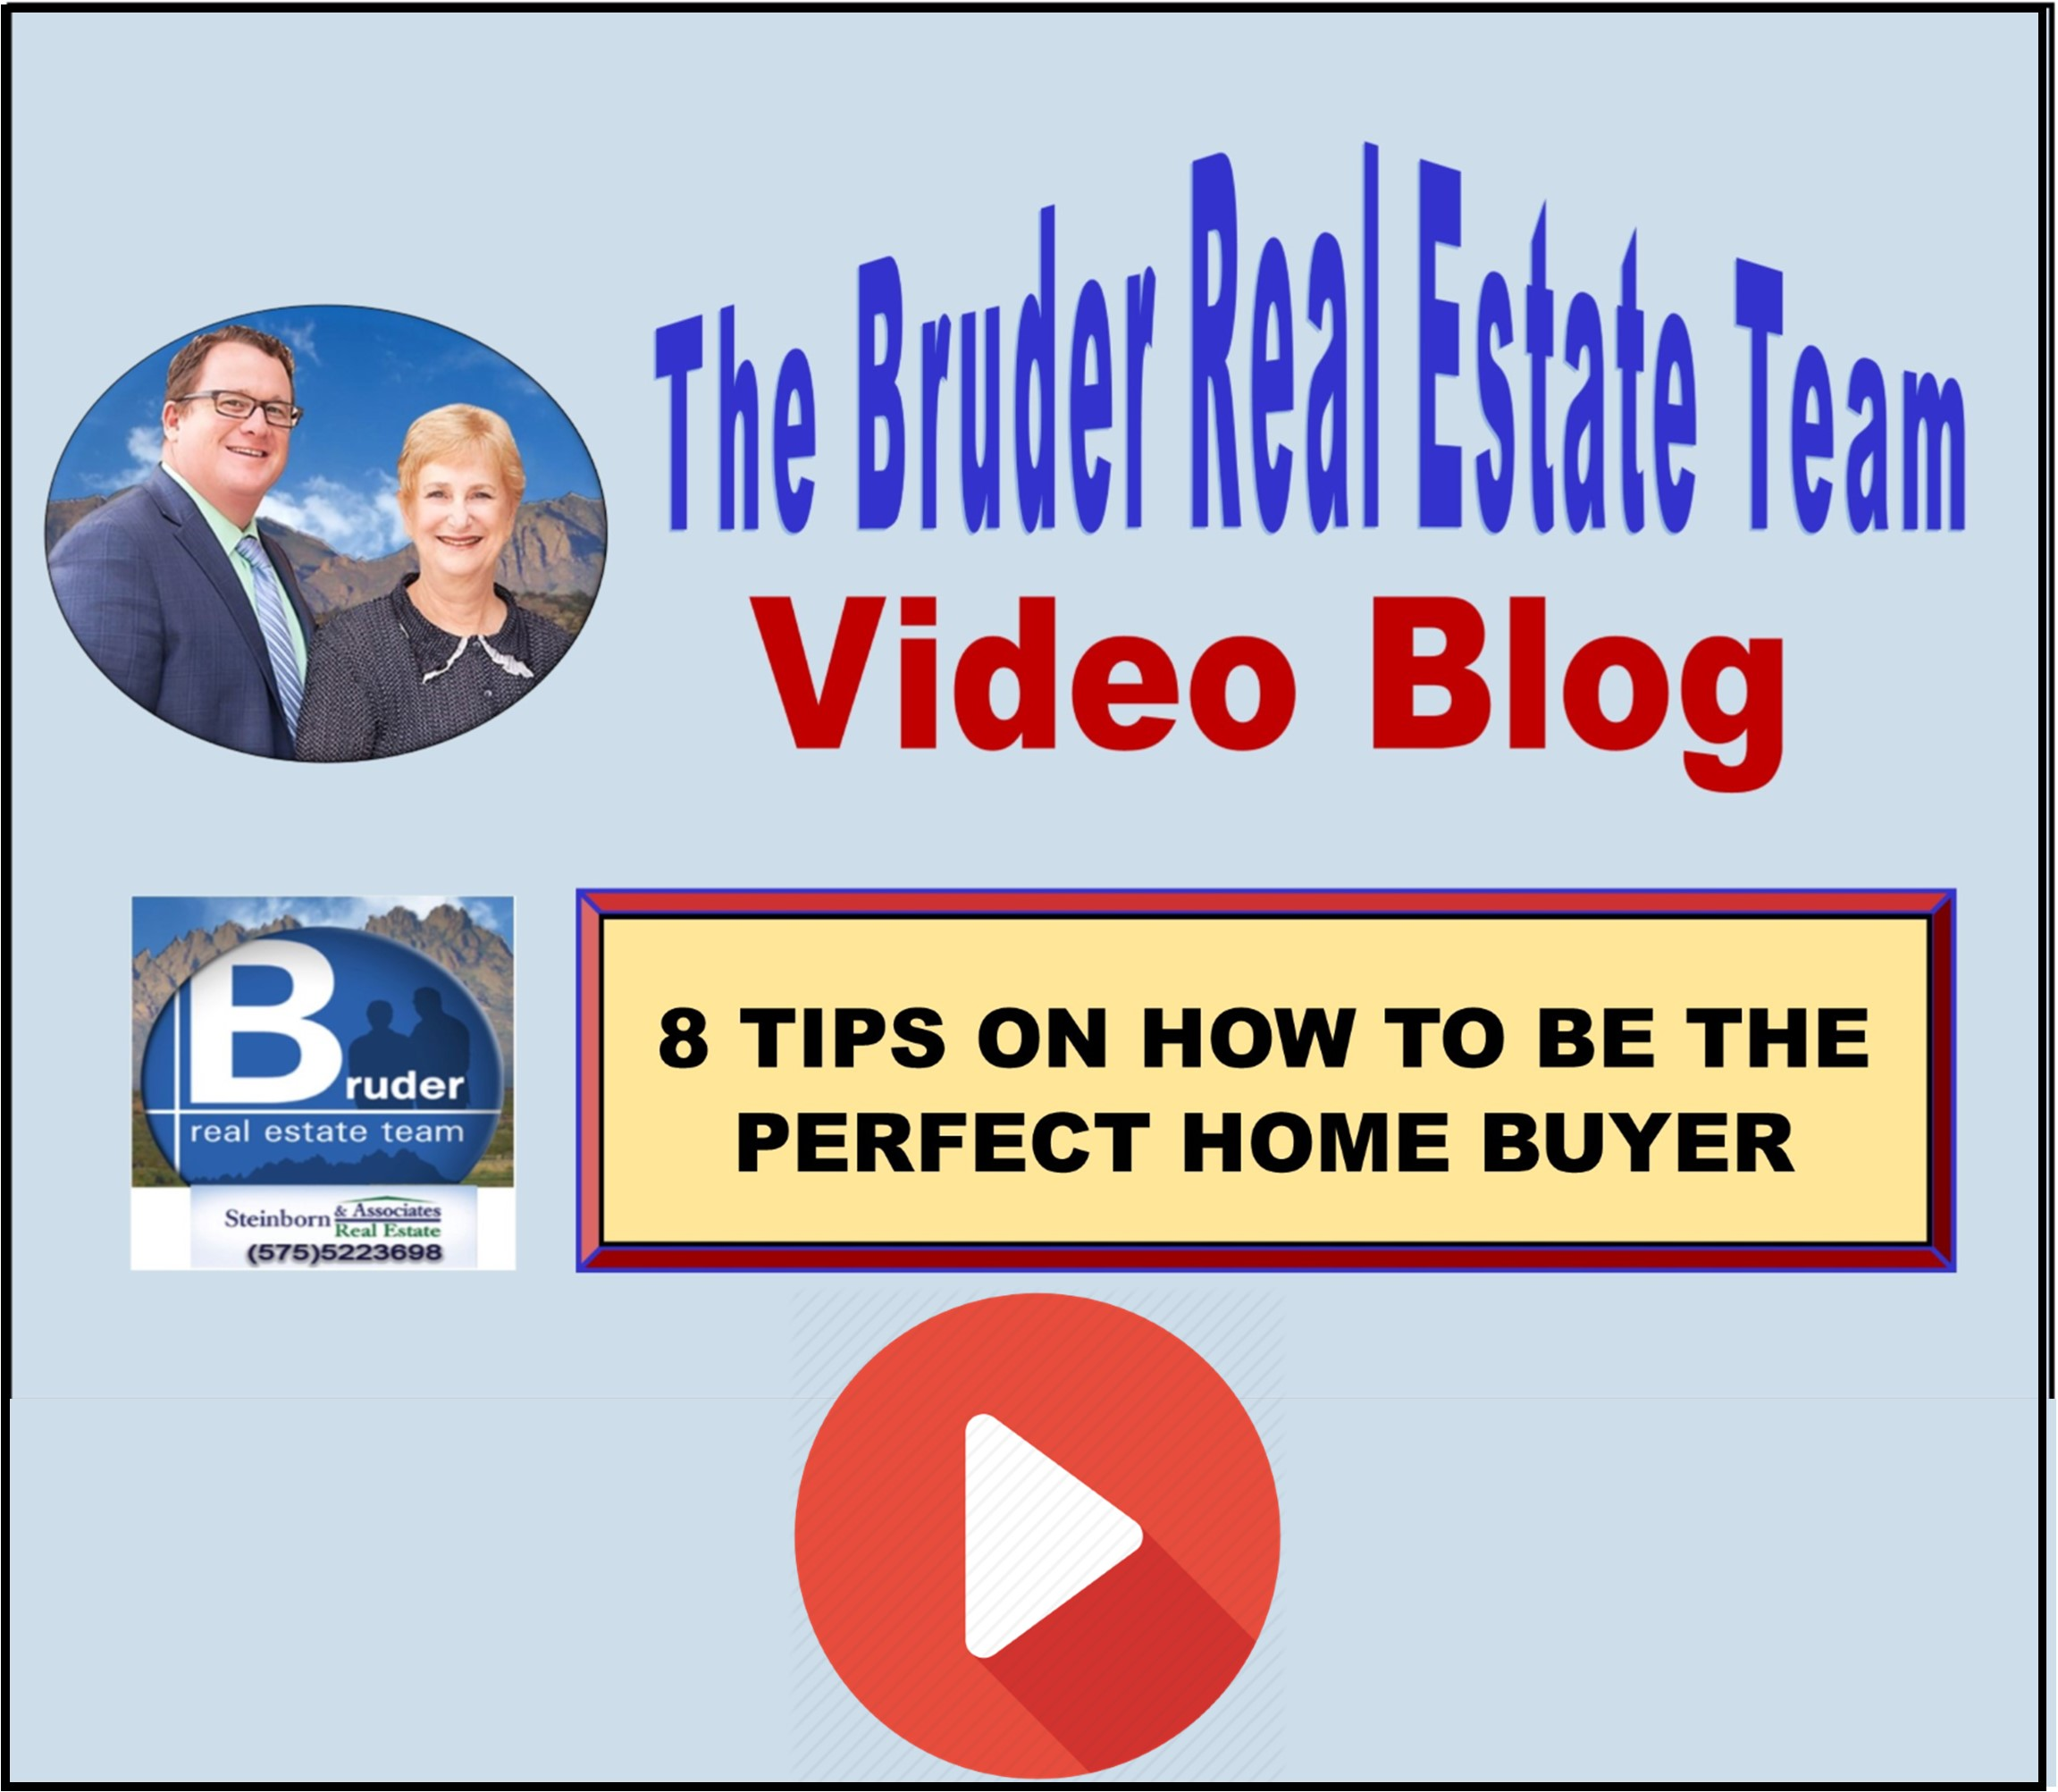 8 tips to be a perfect home buyer video title